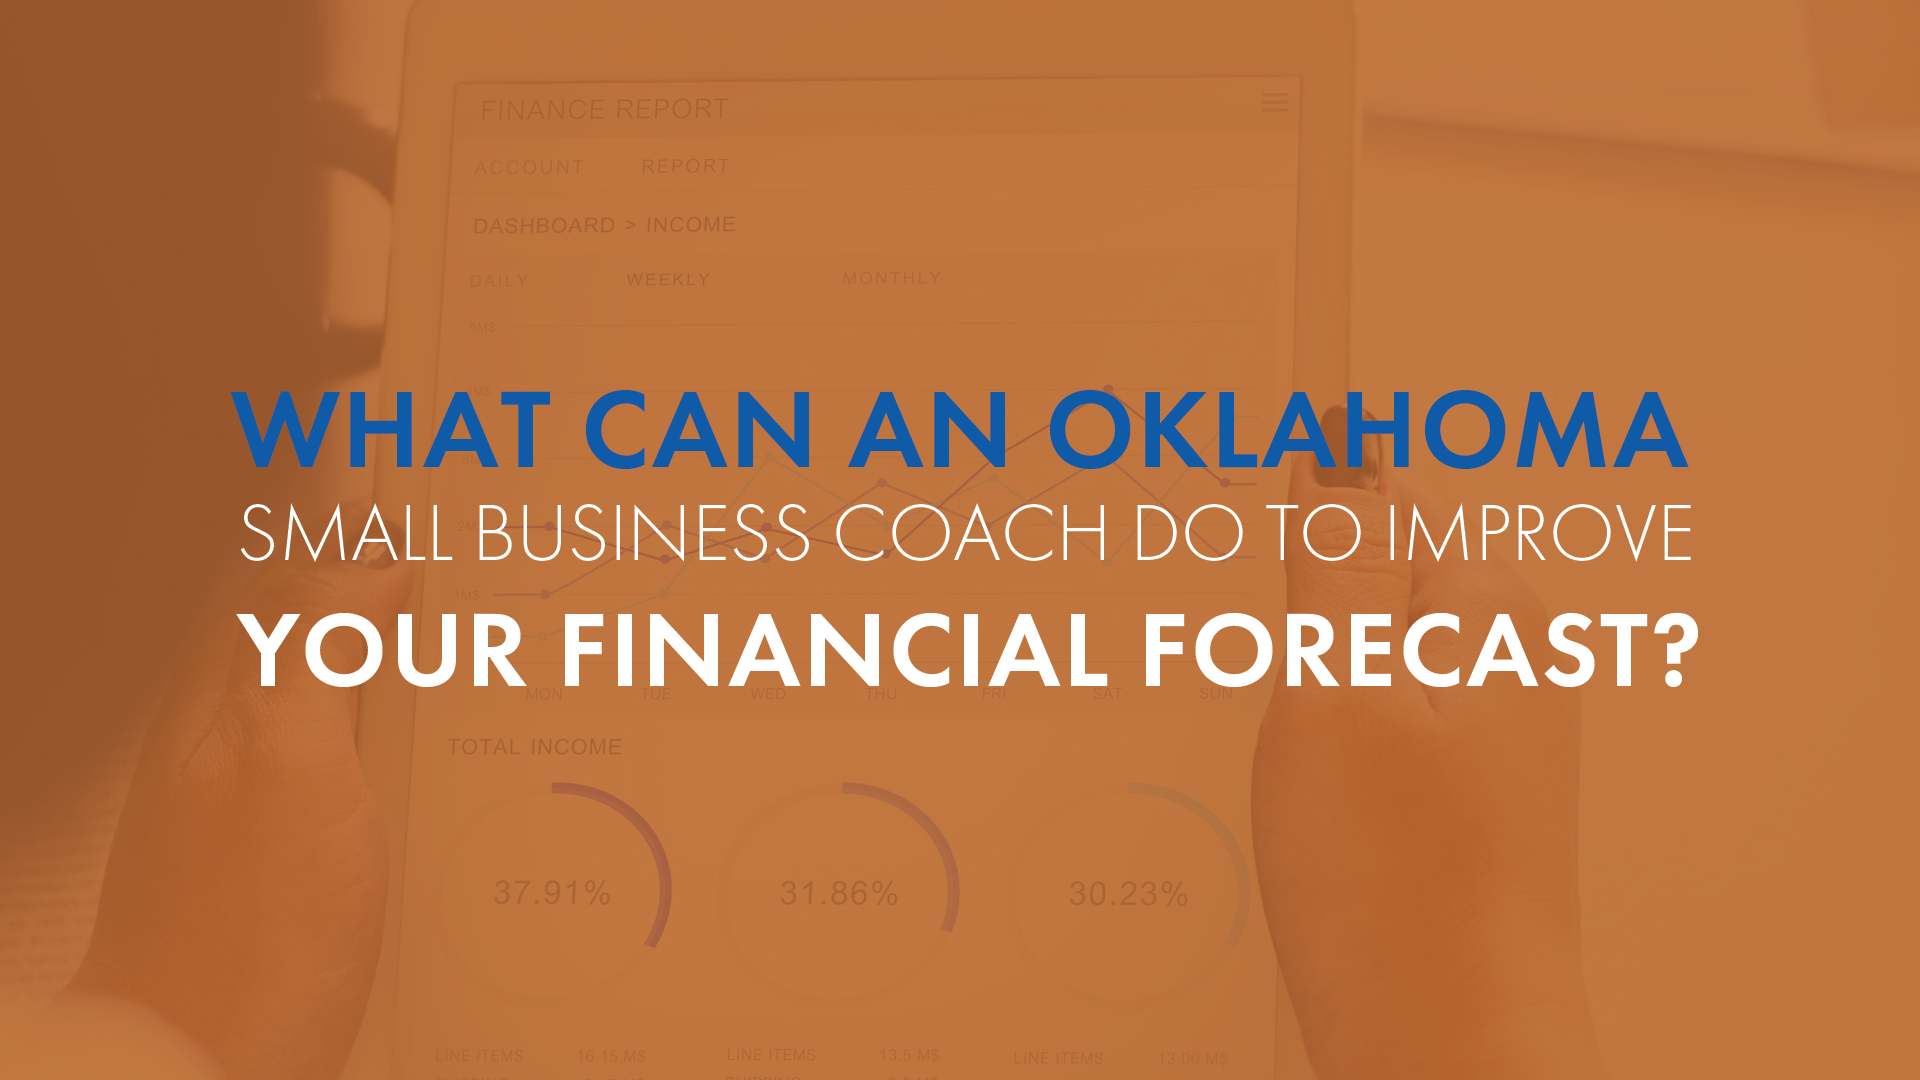 What Can an Oklahoma Small Business Coach do to Improve Your